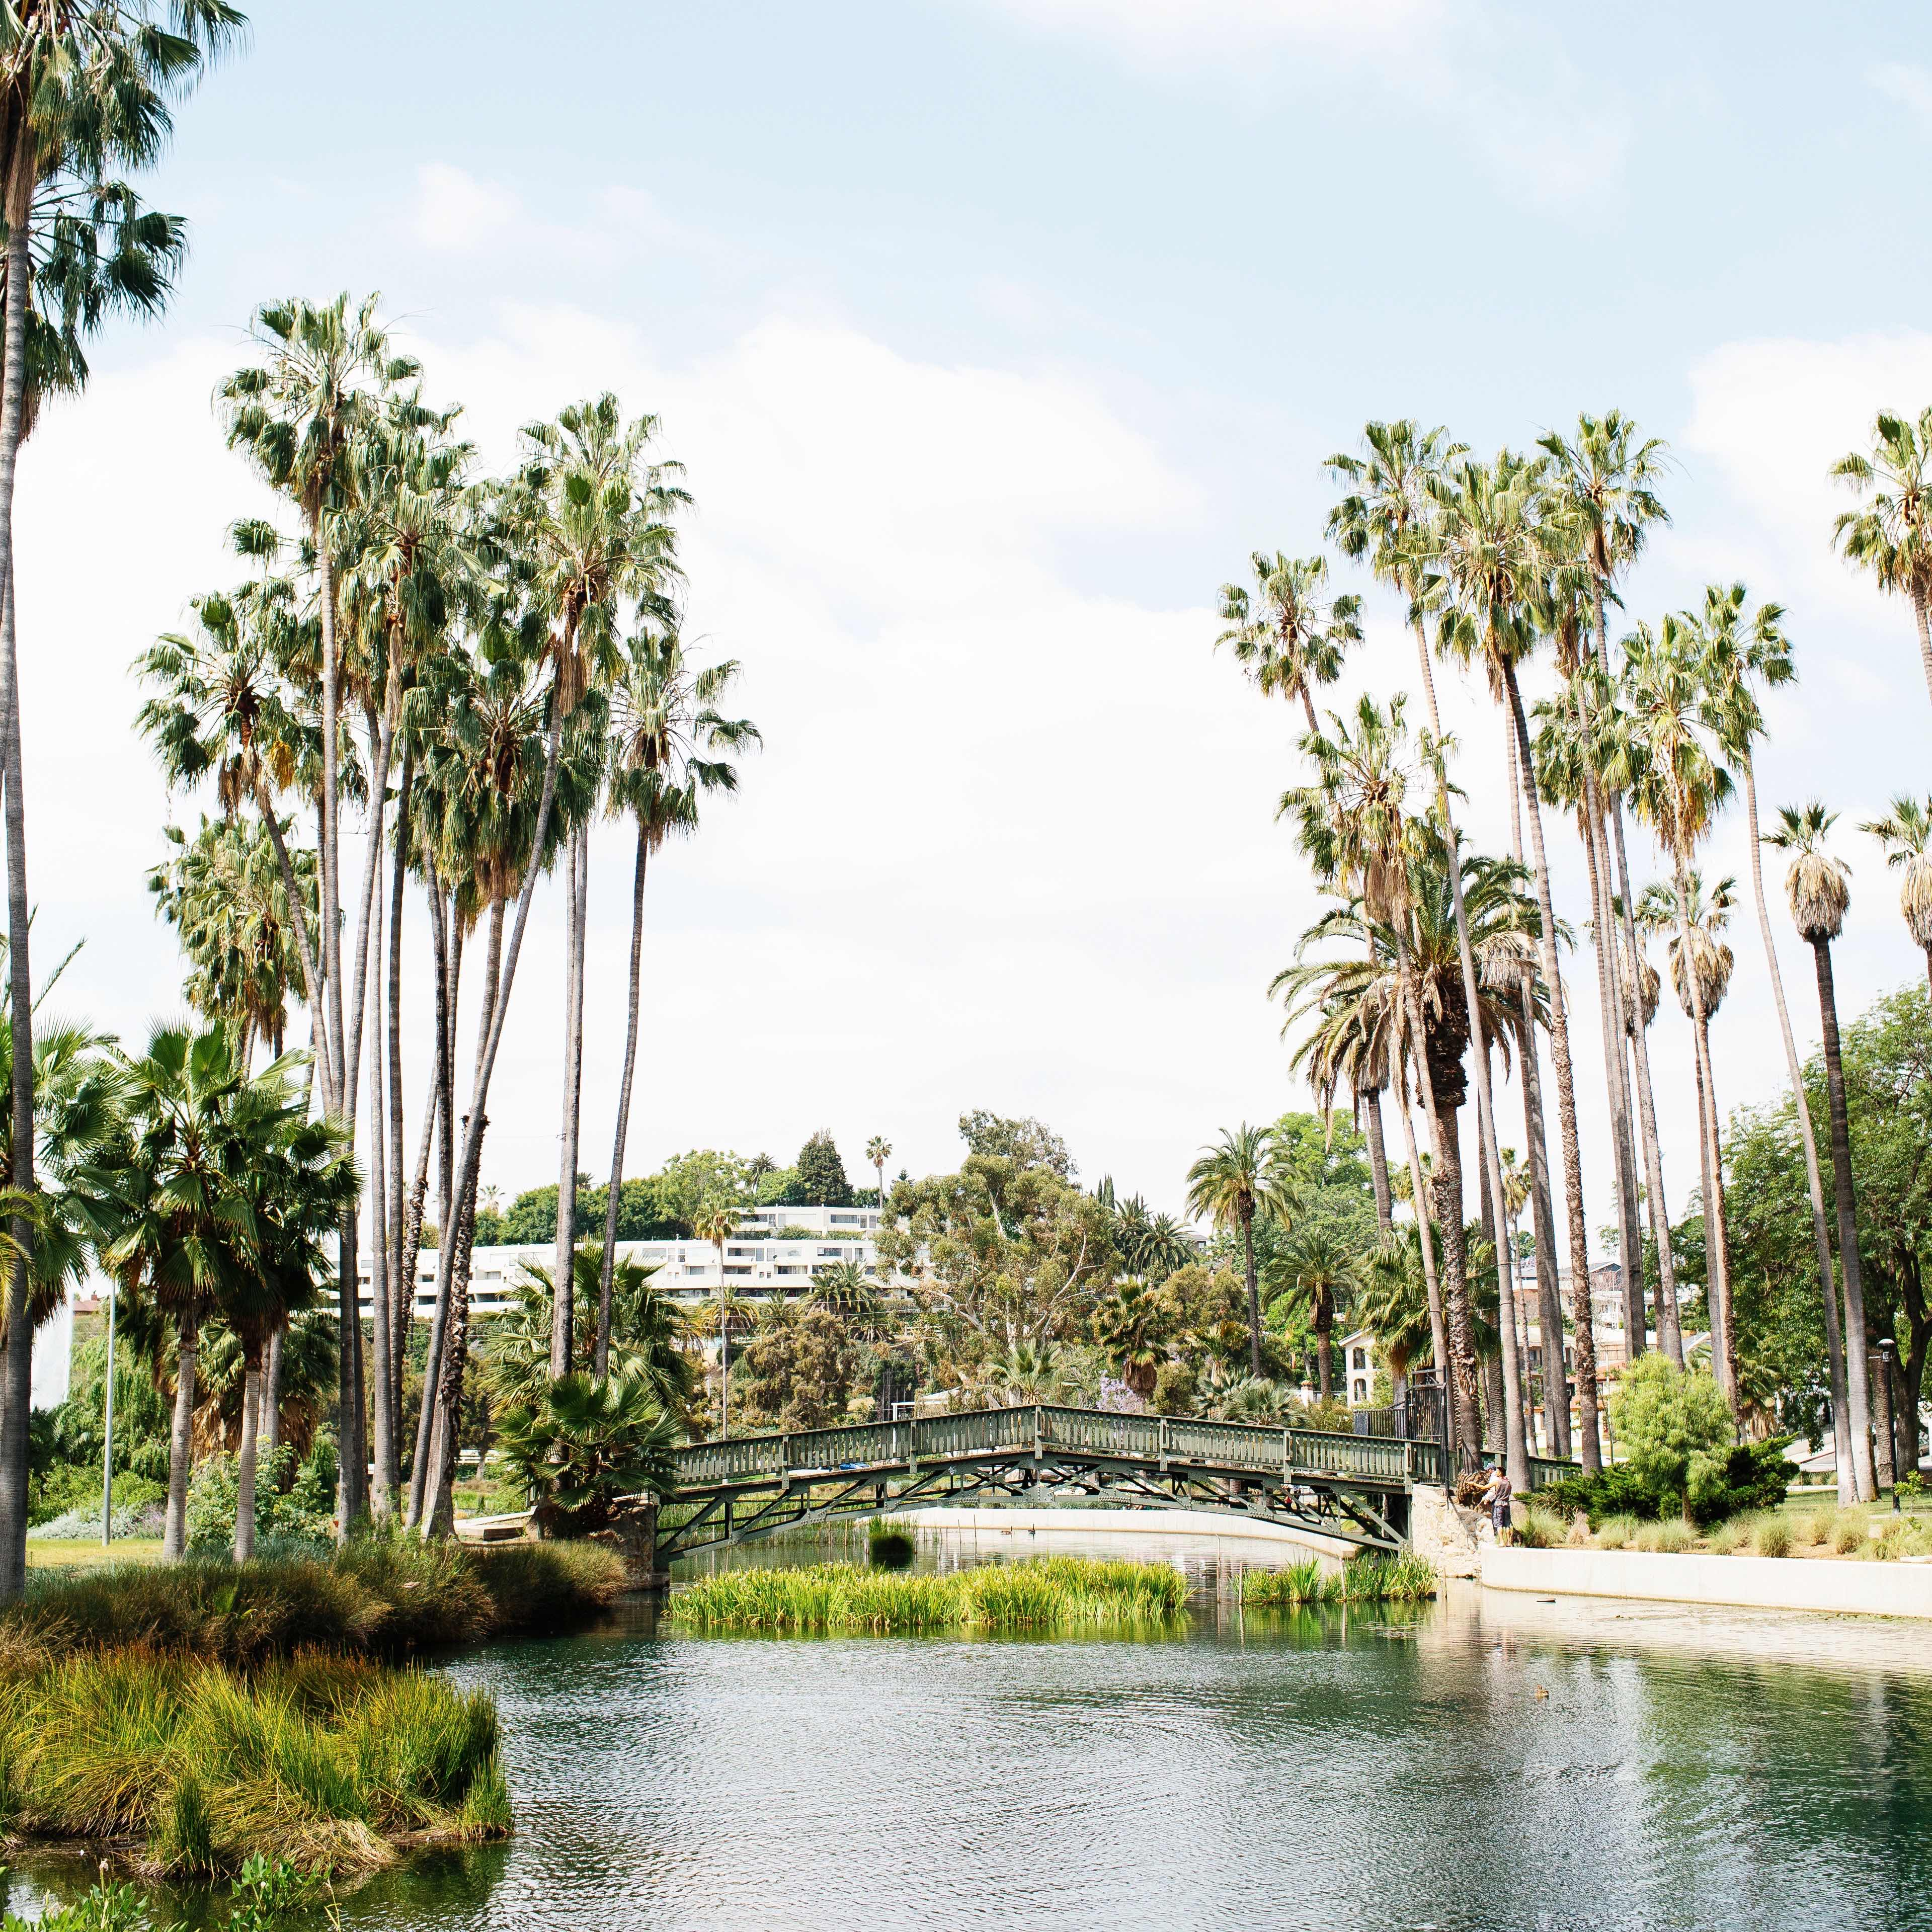 Palm trees on either side of a small bridge at Echo Lake Park in Los Angeles